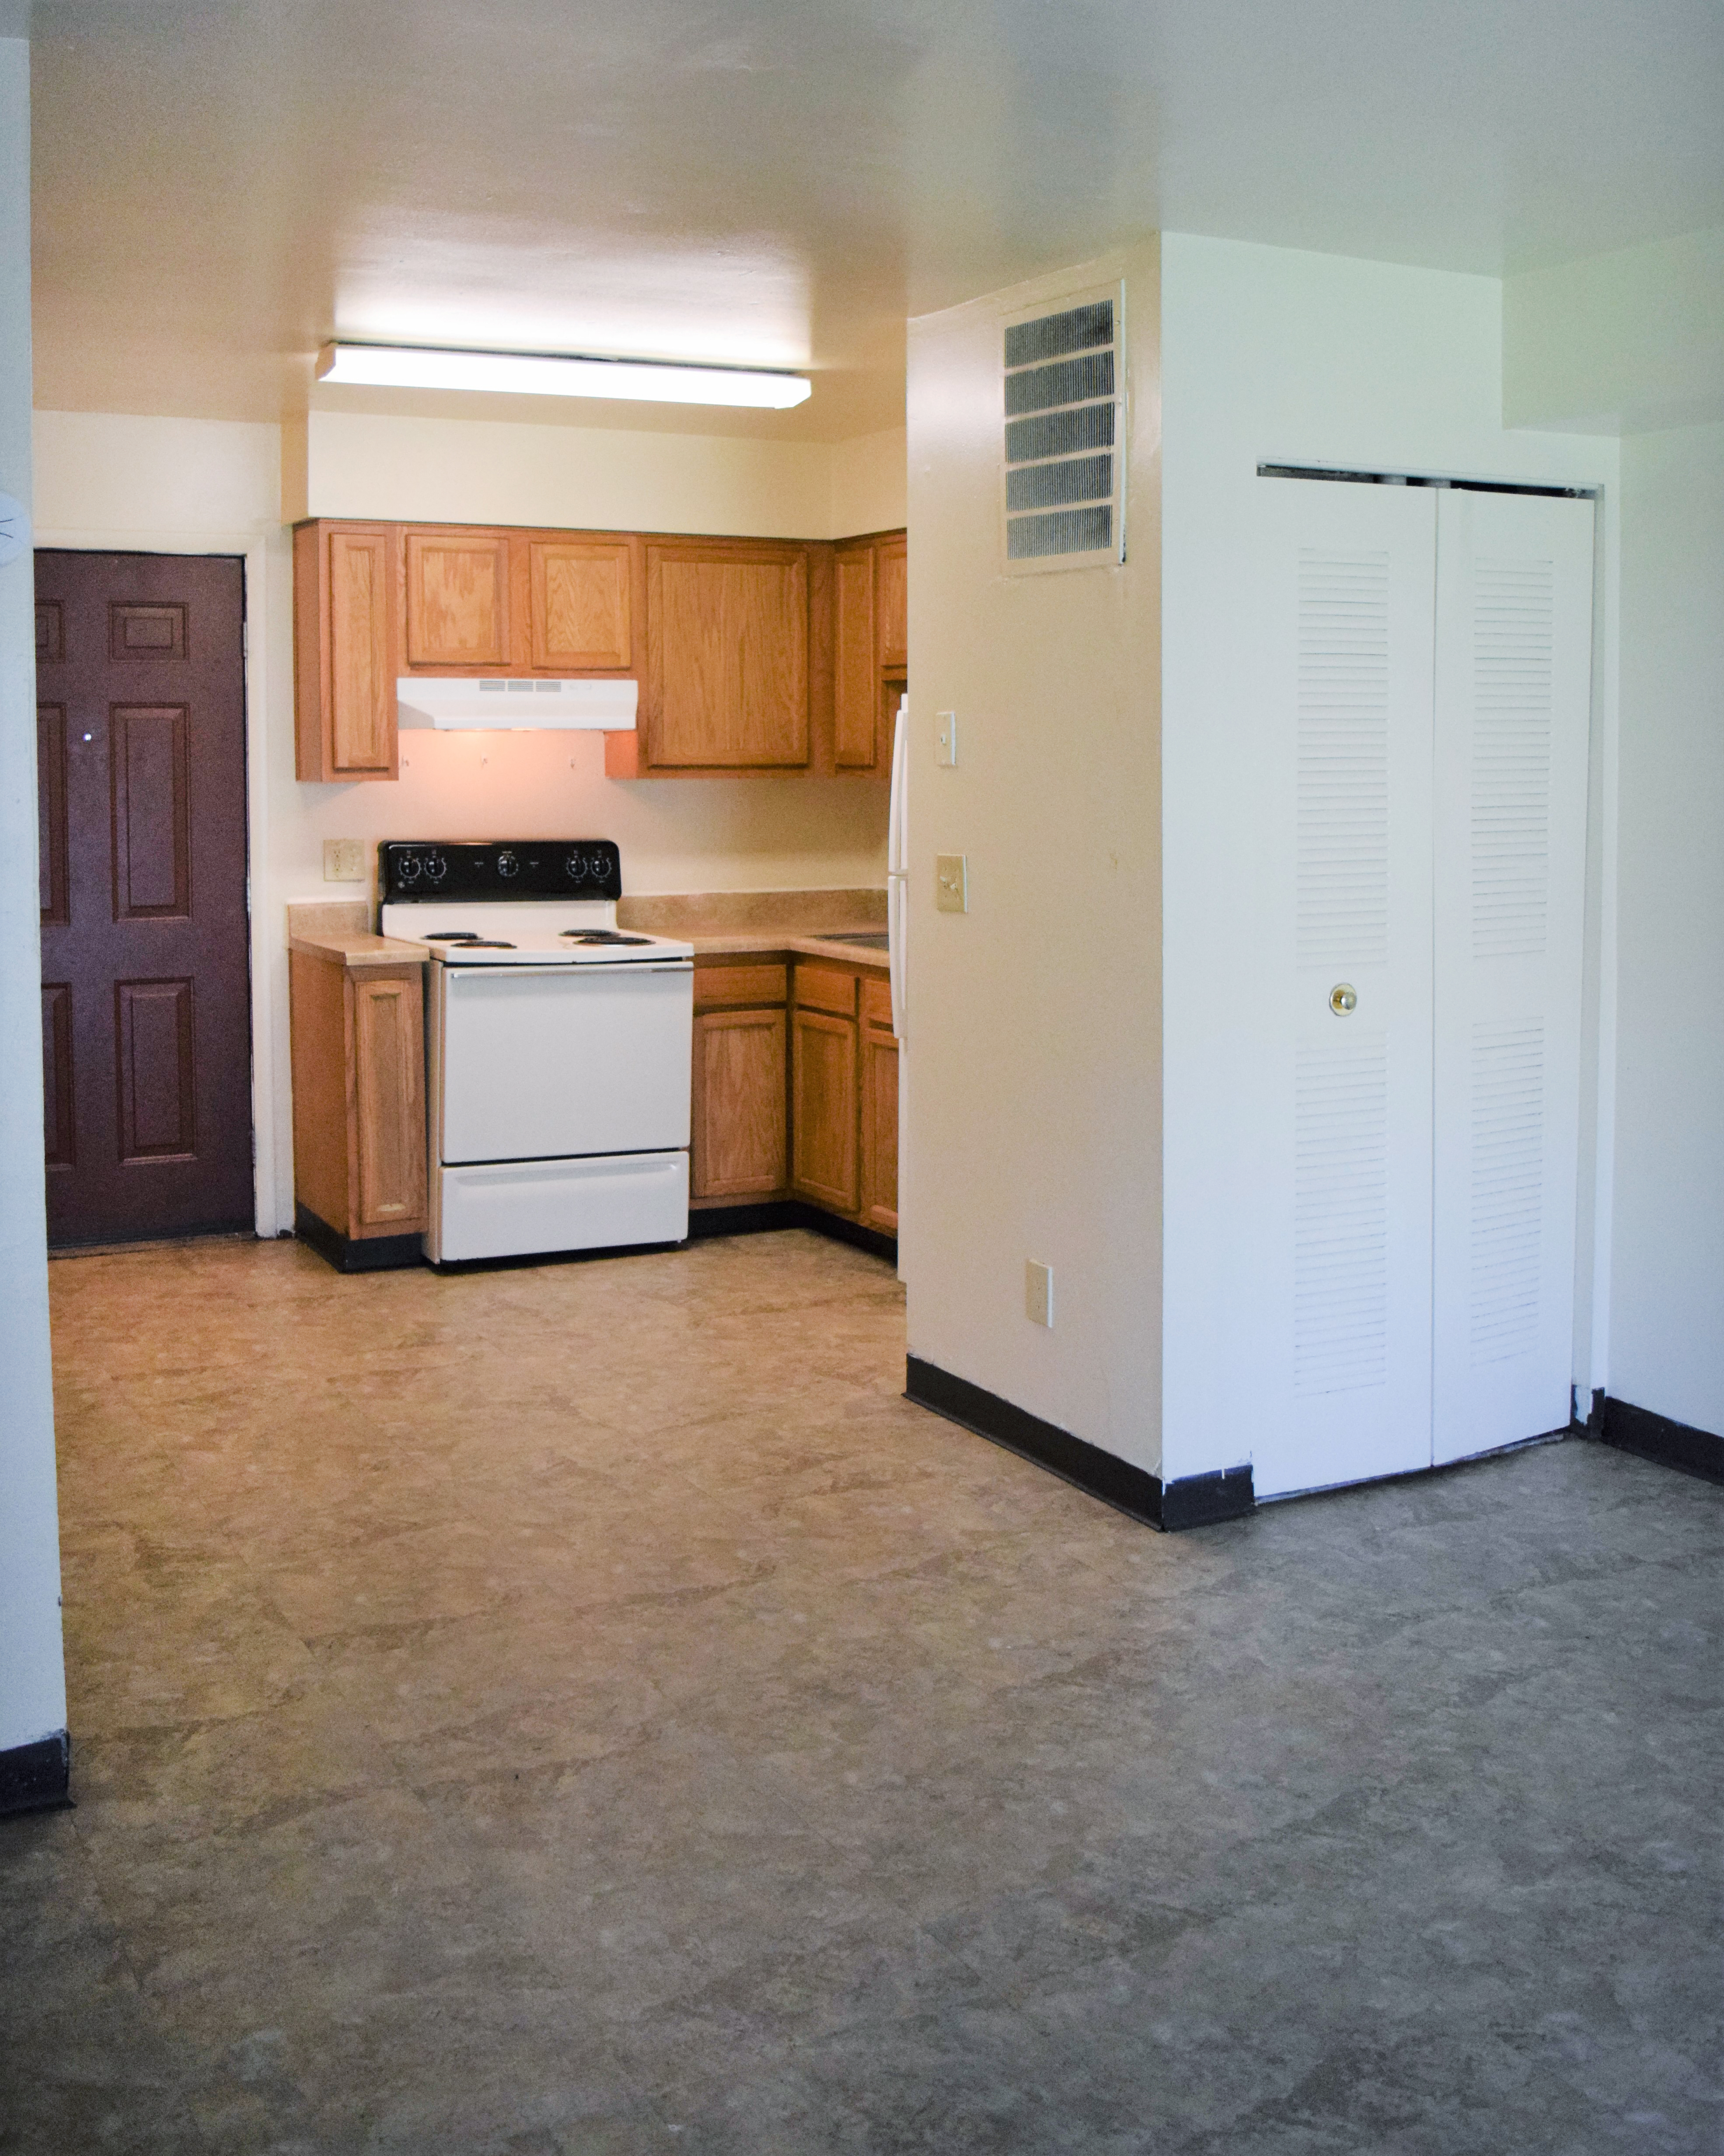 Eagle Ridge (Affordable Housing; Income Limit Restrictions Apply) rental